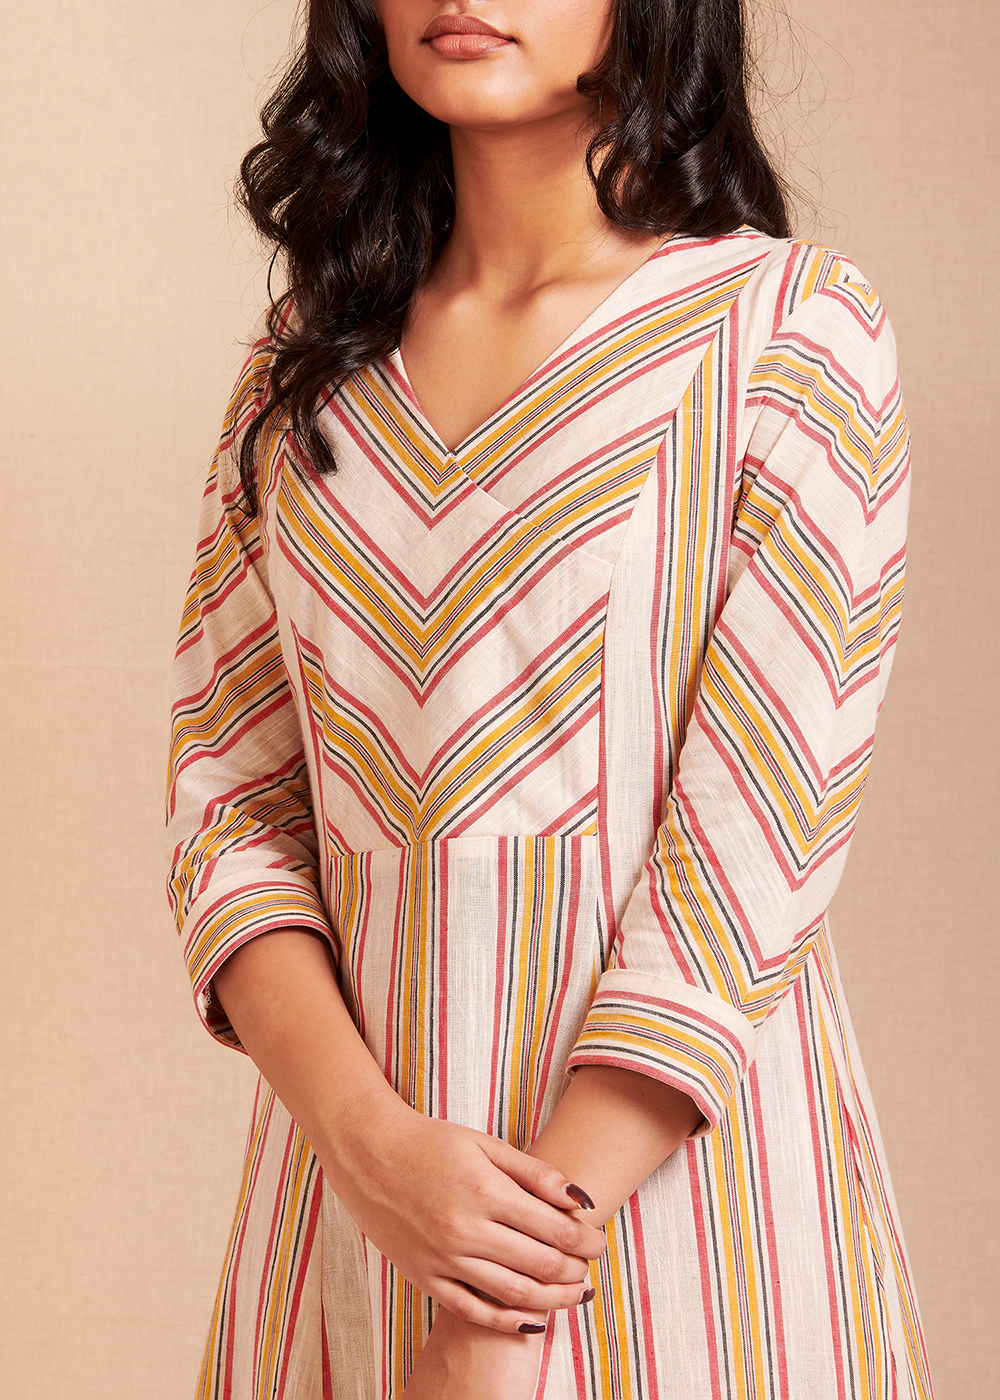 CONNECT - Red and yellow Striped Kurta/Dress